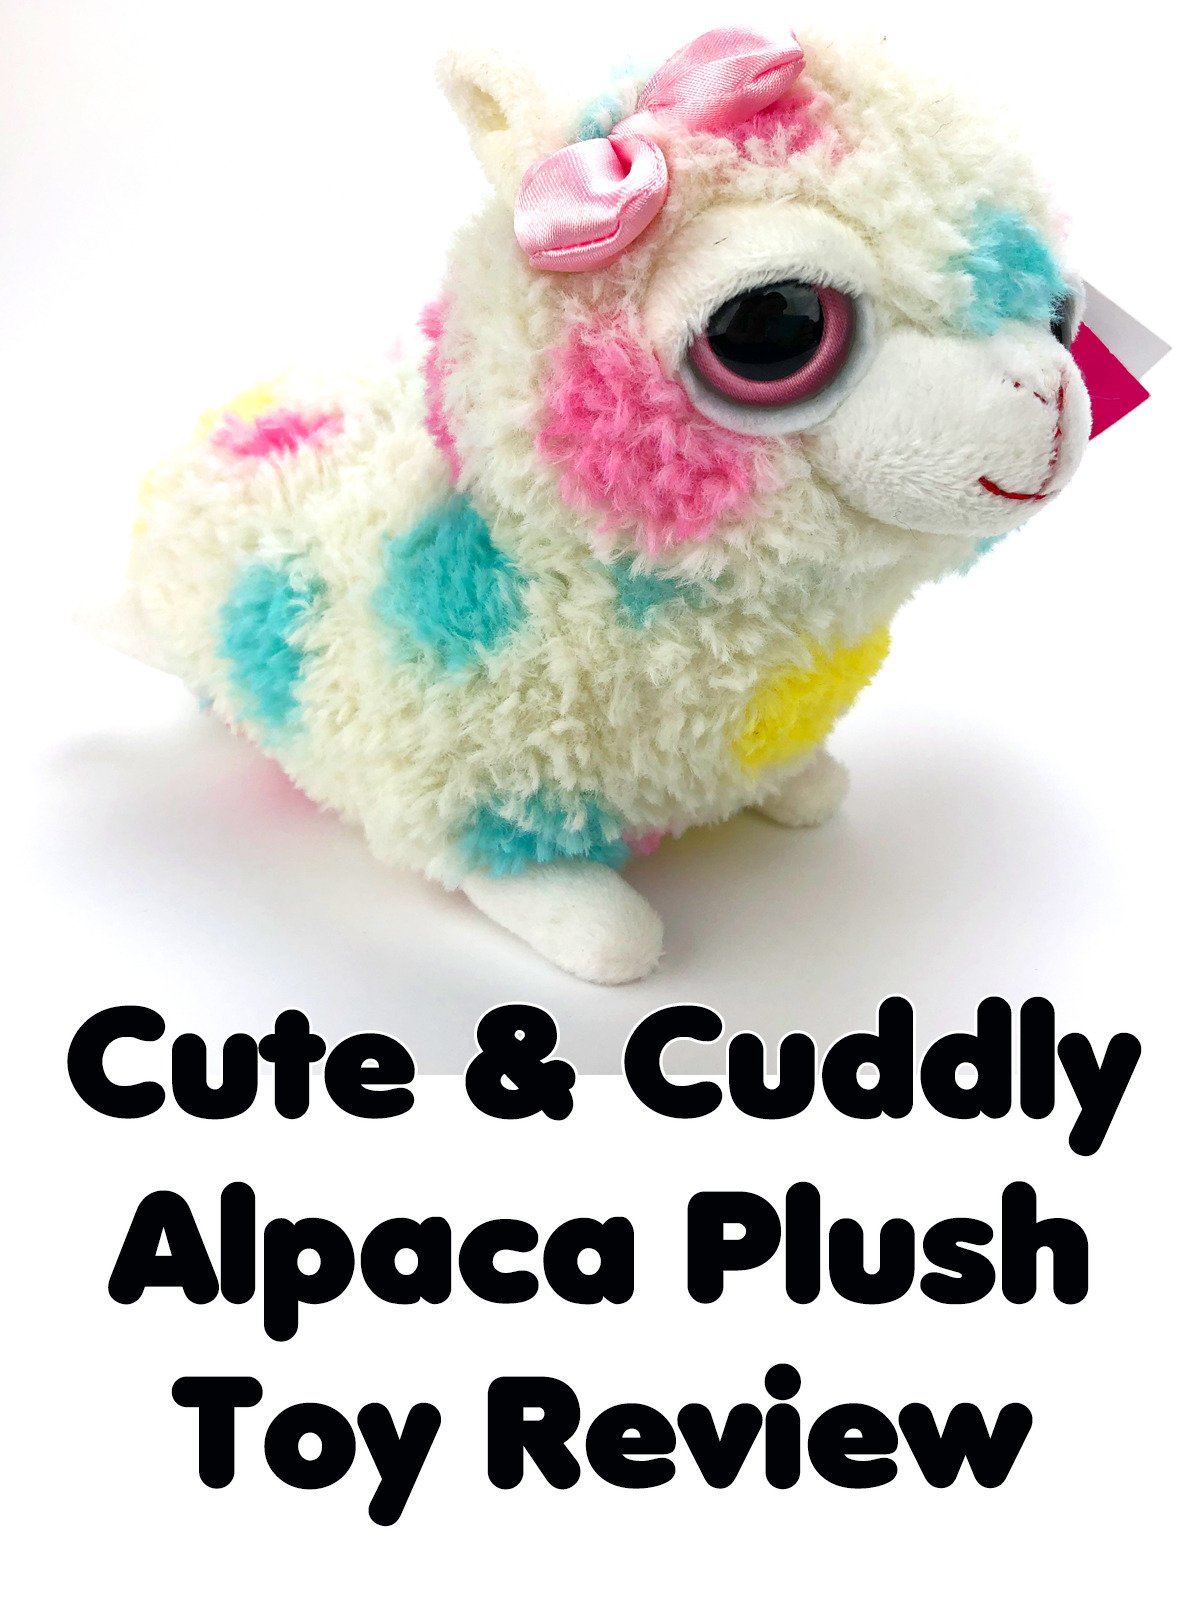 Review: Cute & Cuddly Alpaca Plush Toy Review on Amazon Prime Video UK